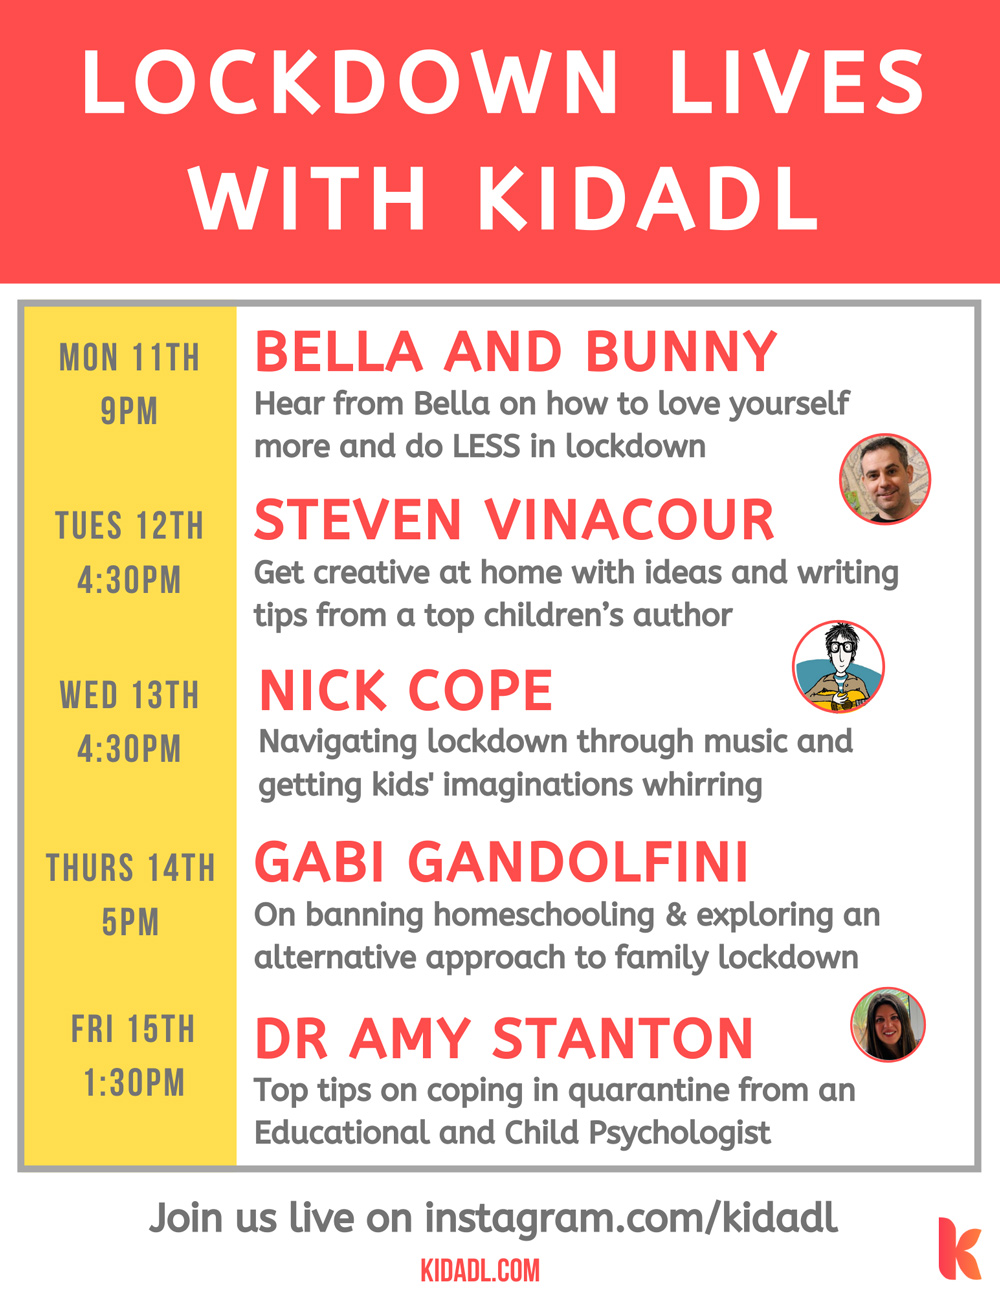 Alleviate the 7-week itch with Kidadl's series of lockdown live streams.